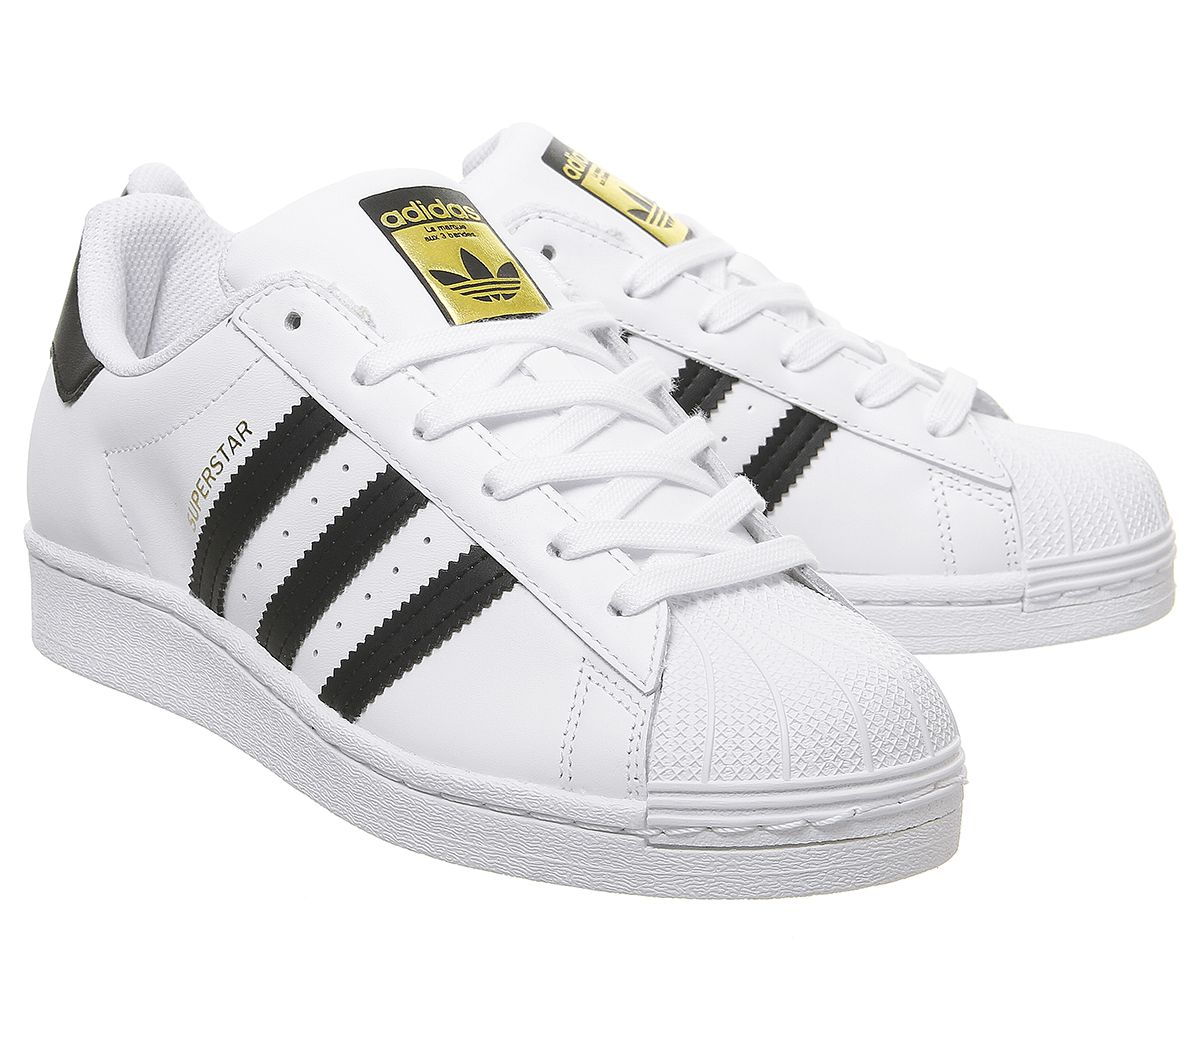 Falsificación acortar Incesante  Womens Adidas Superstar Gs Trainers White Black White Trainers Shoes | eBay